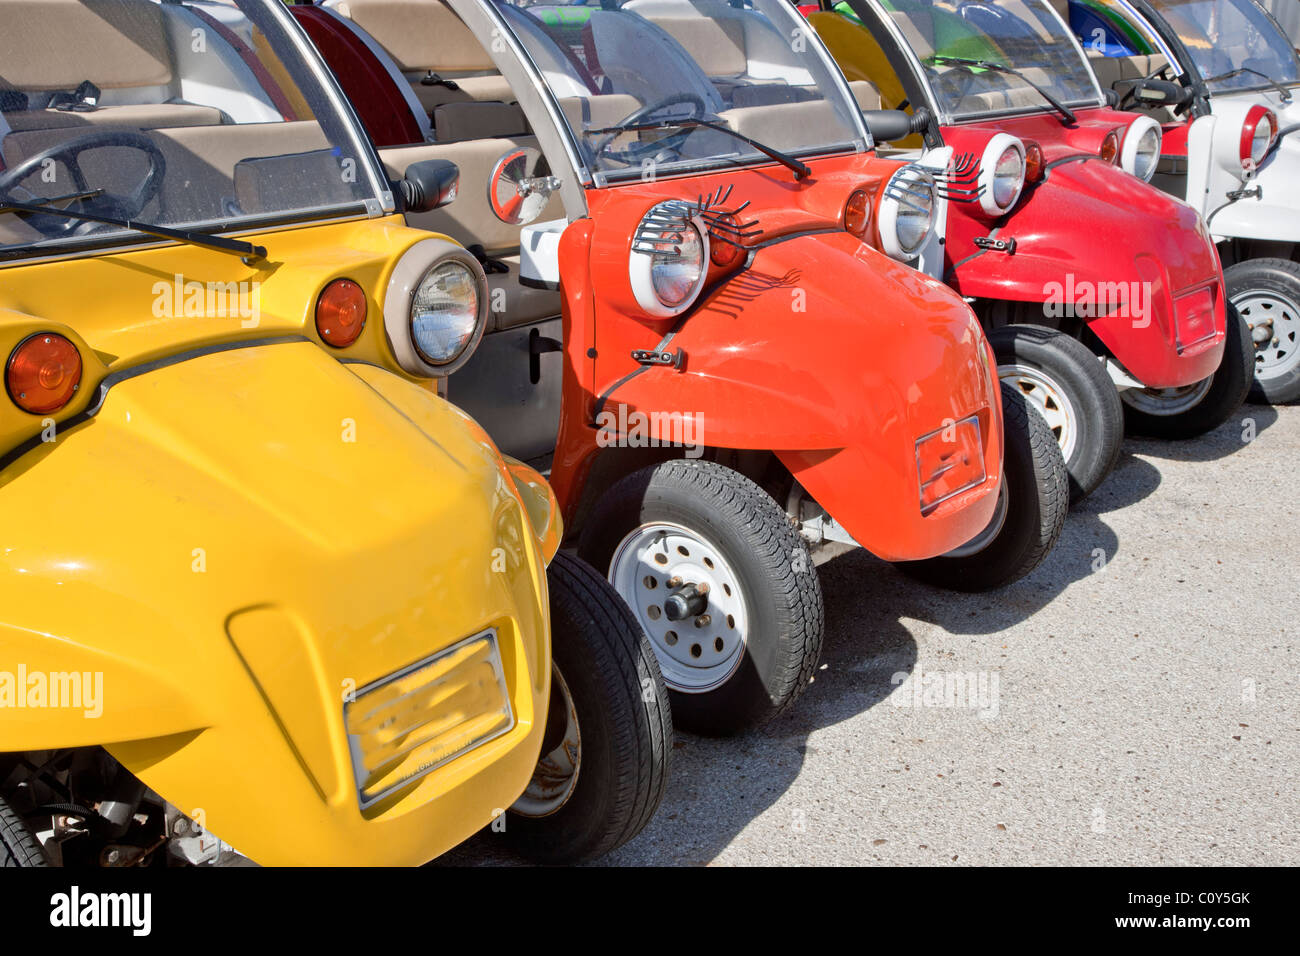 Colorful electric buggies, - Stock Image